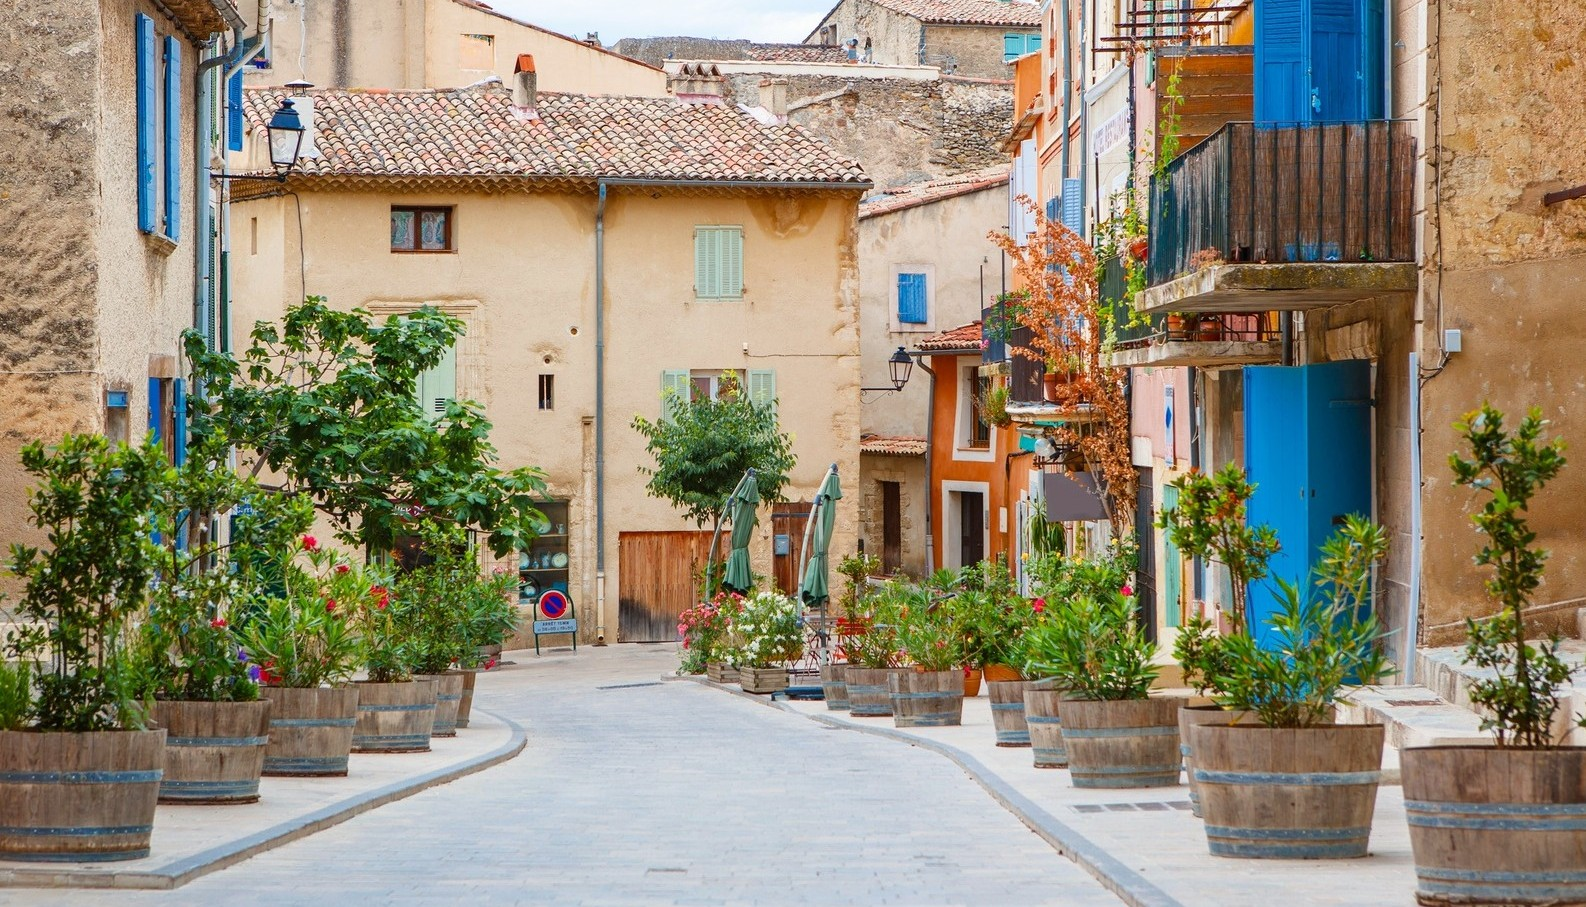 Provencal-street-with-typical-houses-in-southern-France-Provence.-e1439816838140